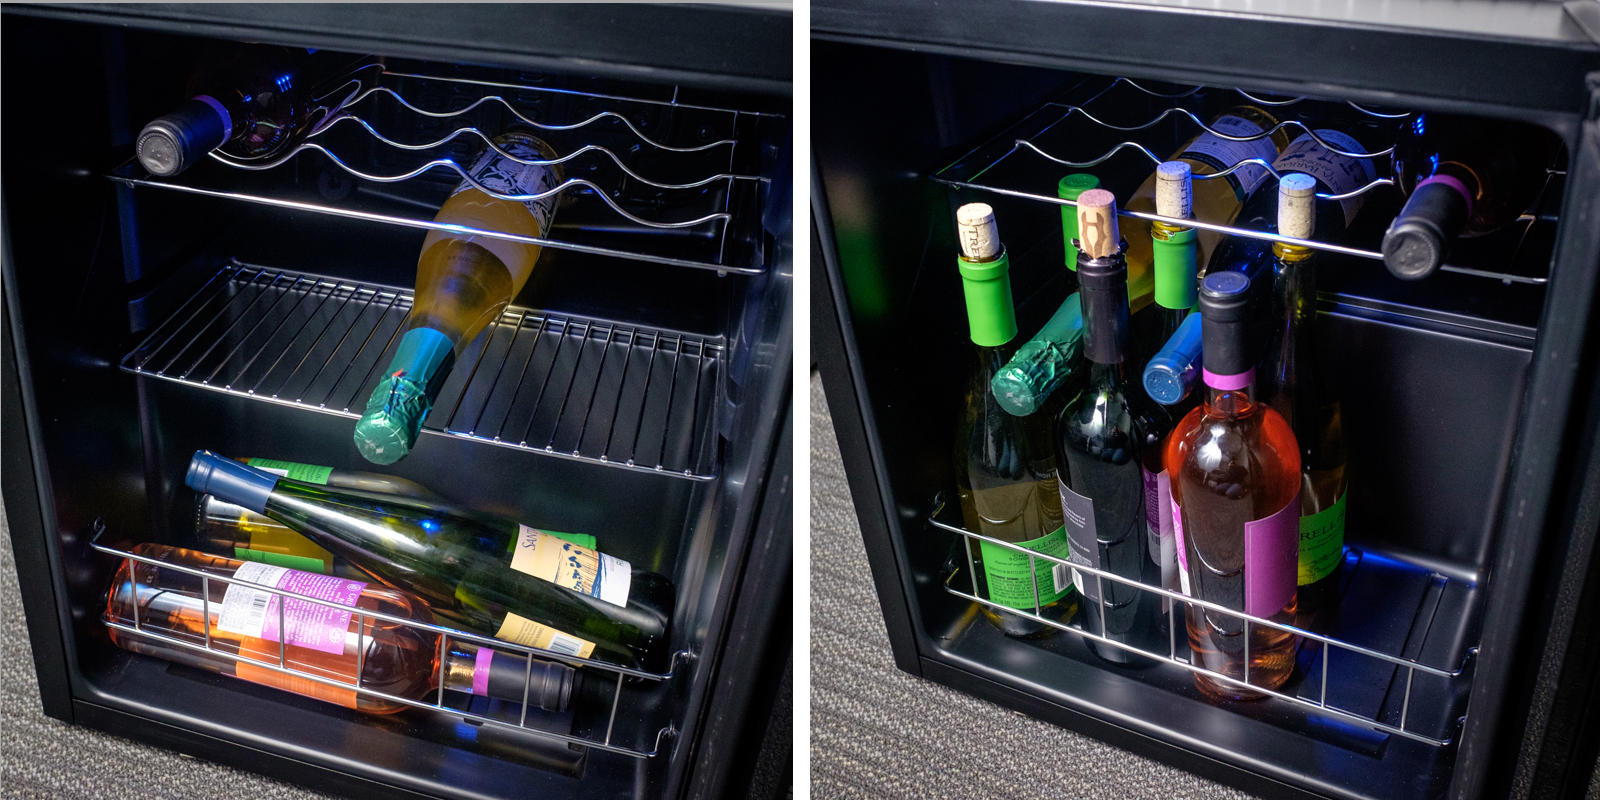 Our Top Pick The Best Wine Cooler